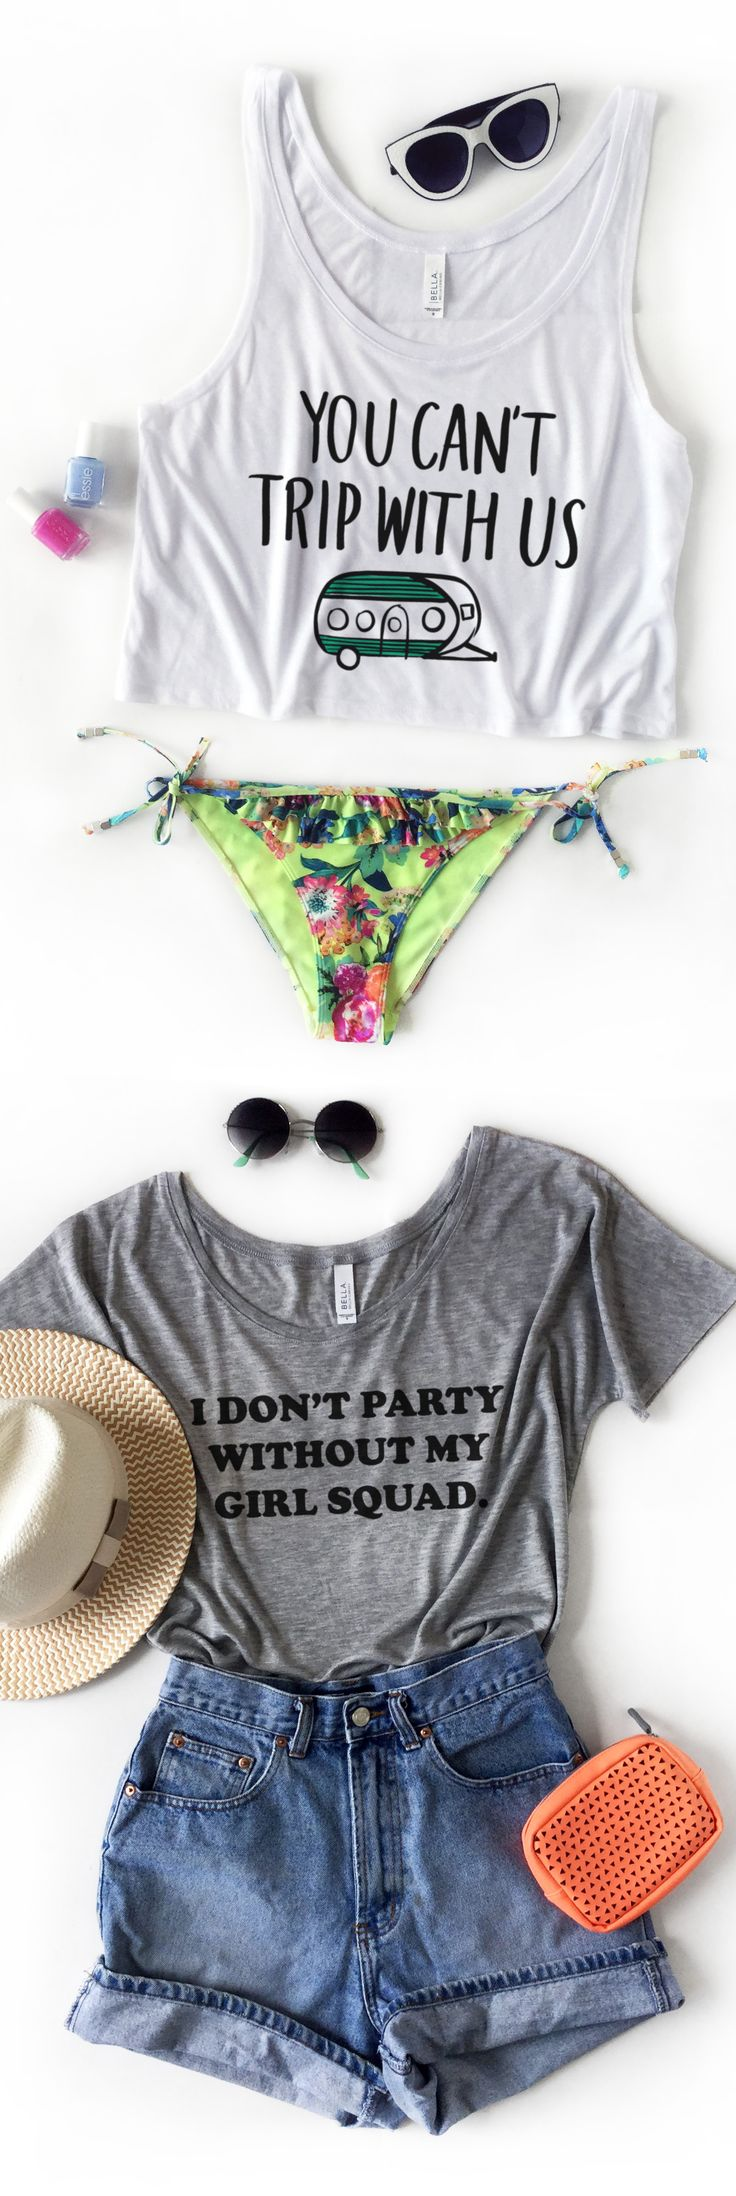 Summer 2016 outfits for you and your bff. You can't trip with us crop top. I don't party without my girl squad flowy tee. #bestfriends teesandtankyou.com